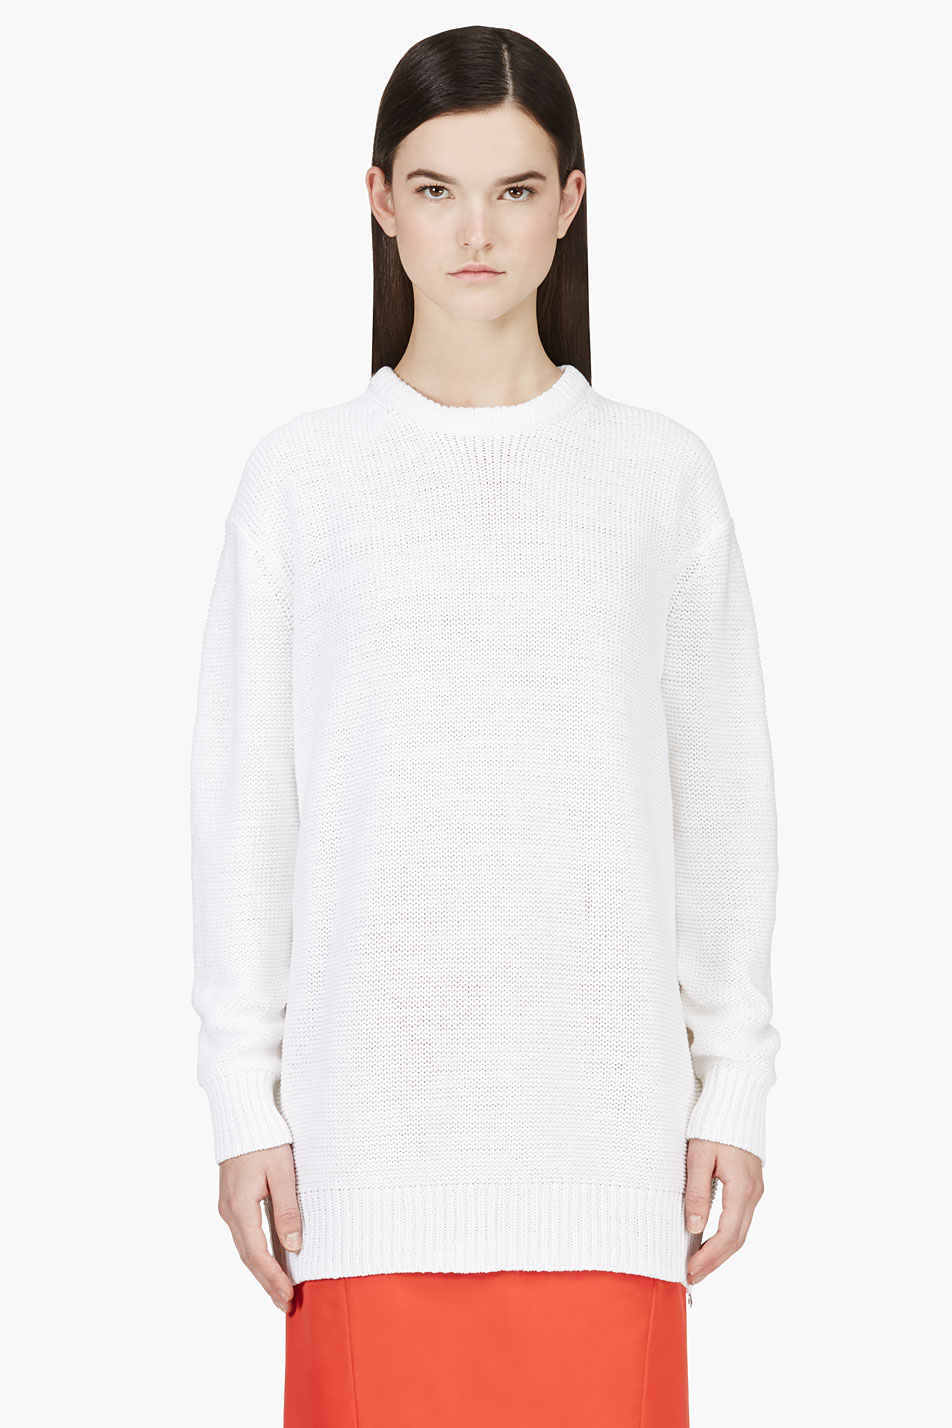 acne studios white oversize knit sade sweater in white lyst. Black Bedroom Furniture Sets. Home Design Ideas